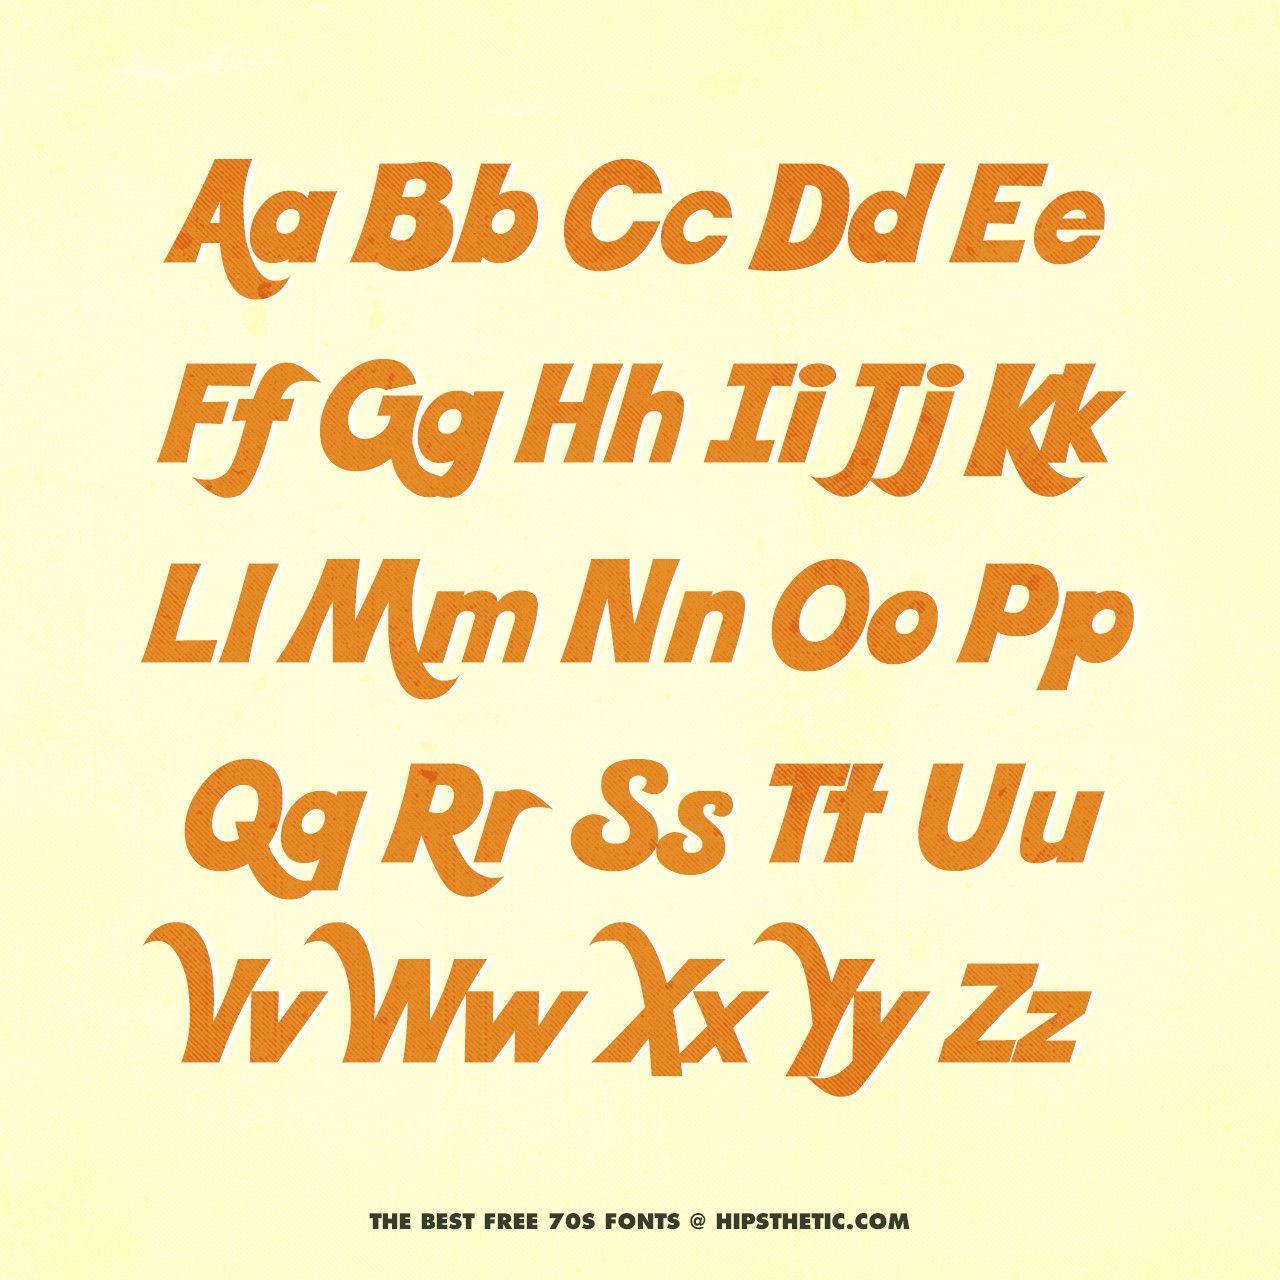 The 12+ Best Free 70s Fonts Free 70s fonts, Aesthetic